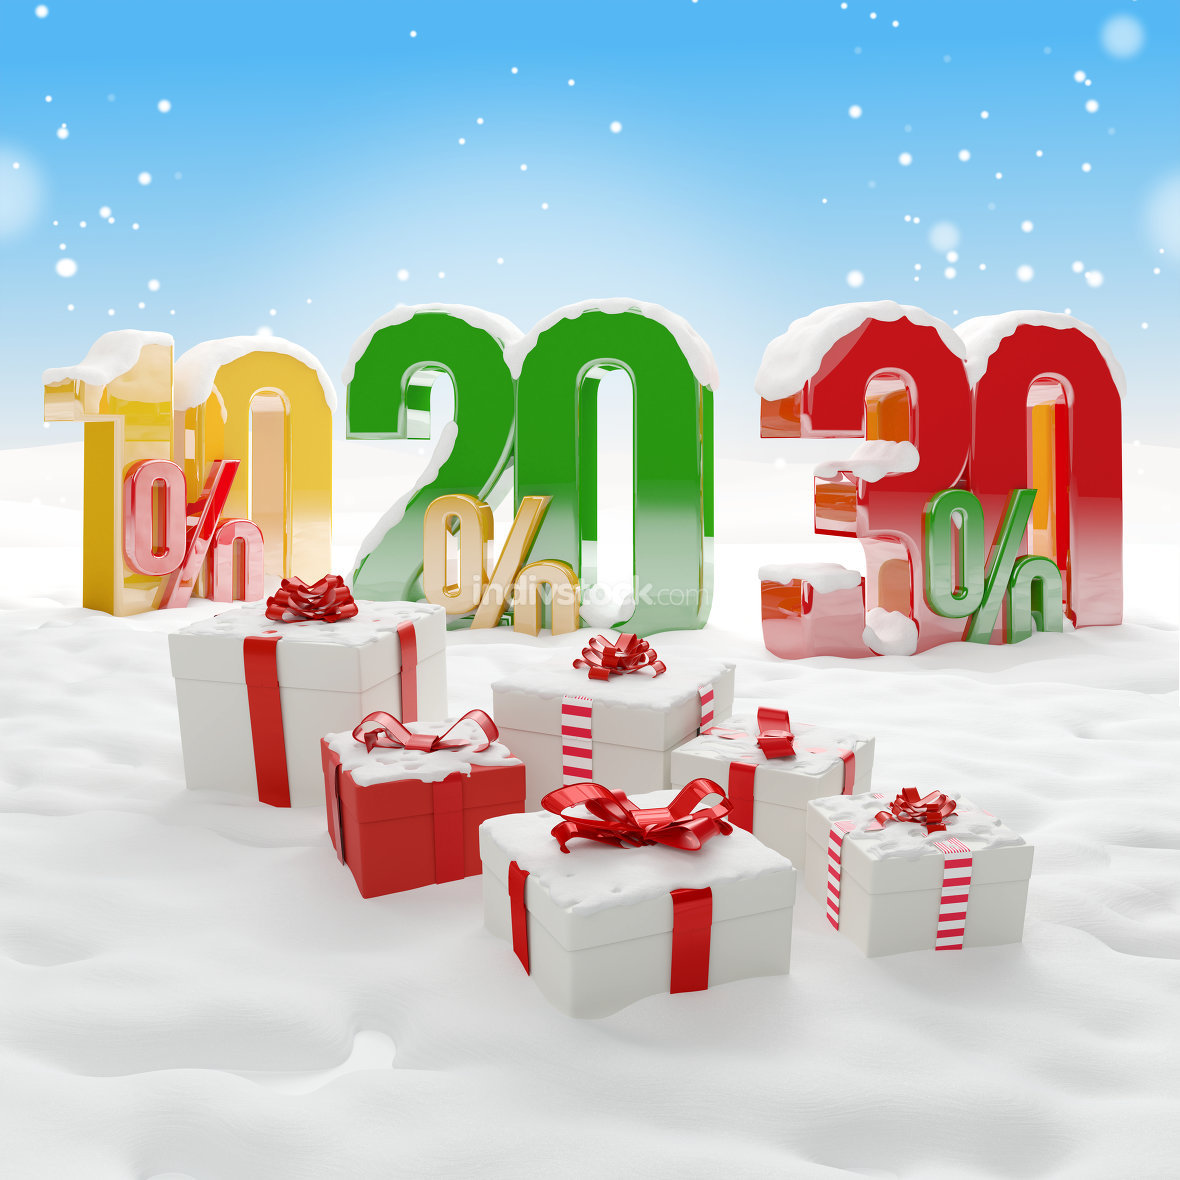 10 20 30 % christmas winter background gifts 3d-illustration